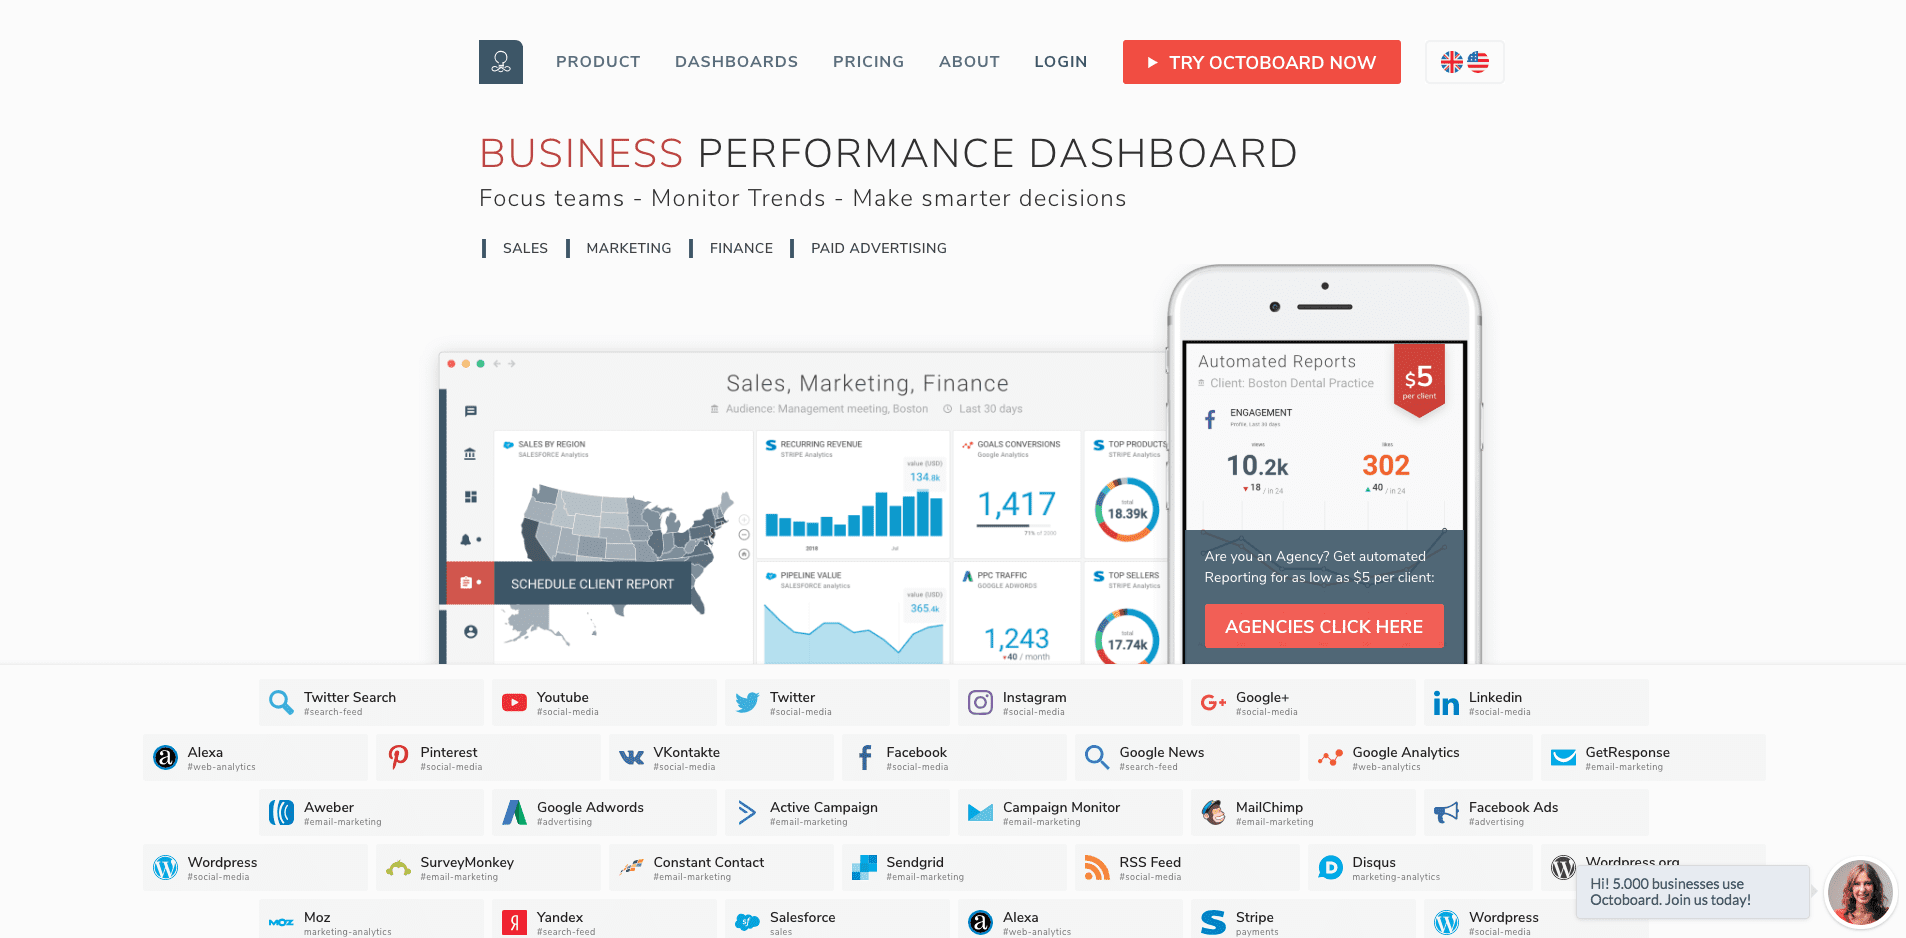 Octoboard dashboard to attract millennials